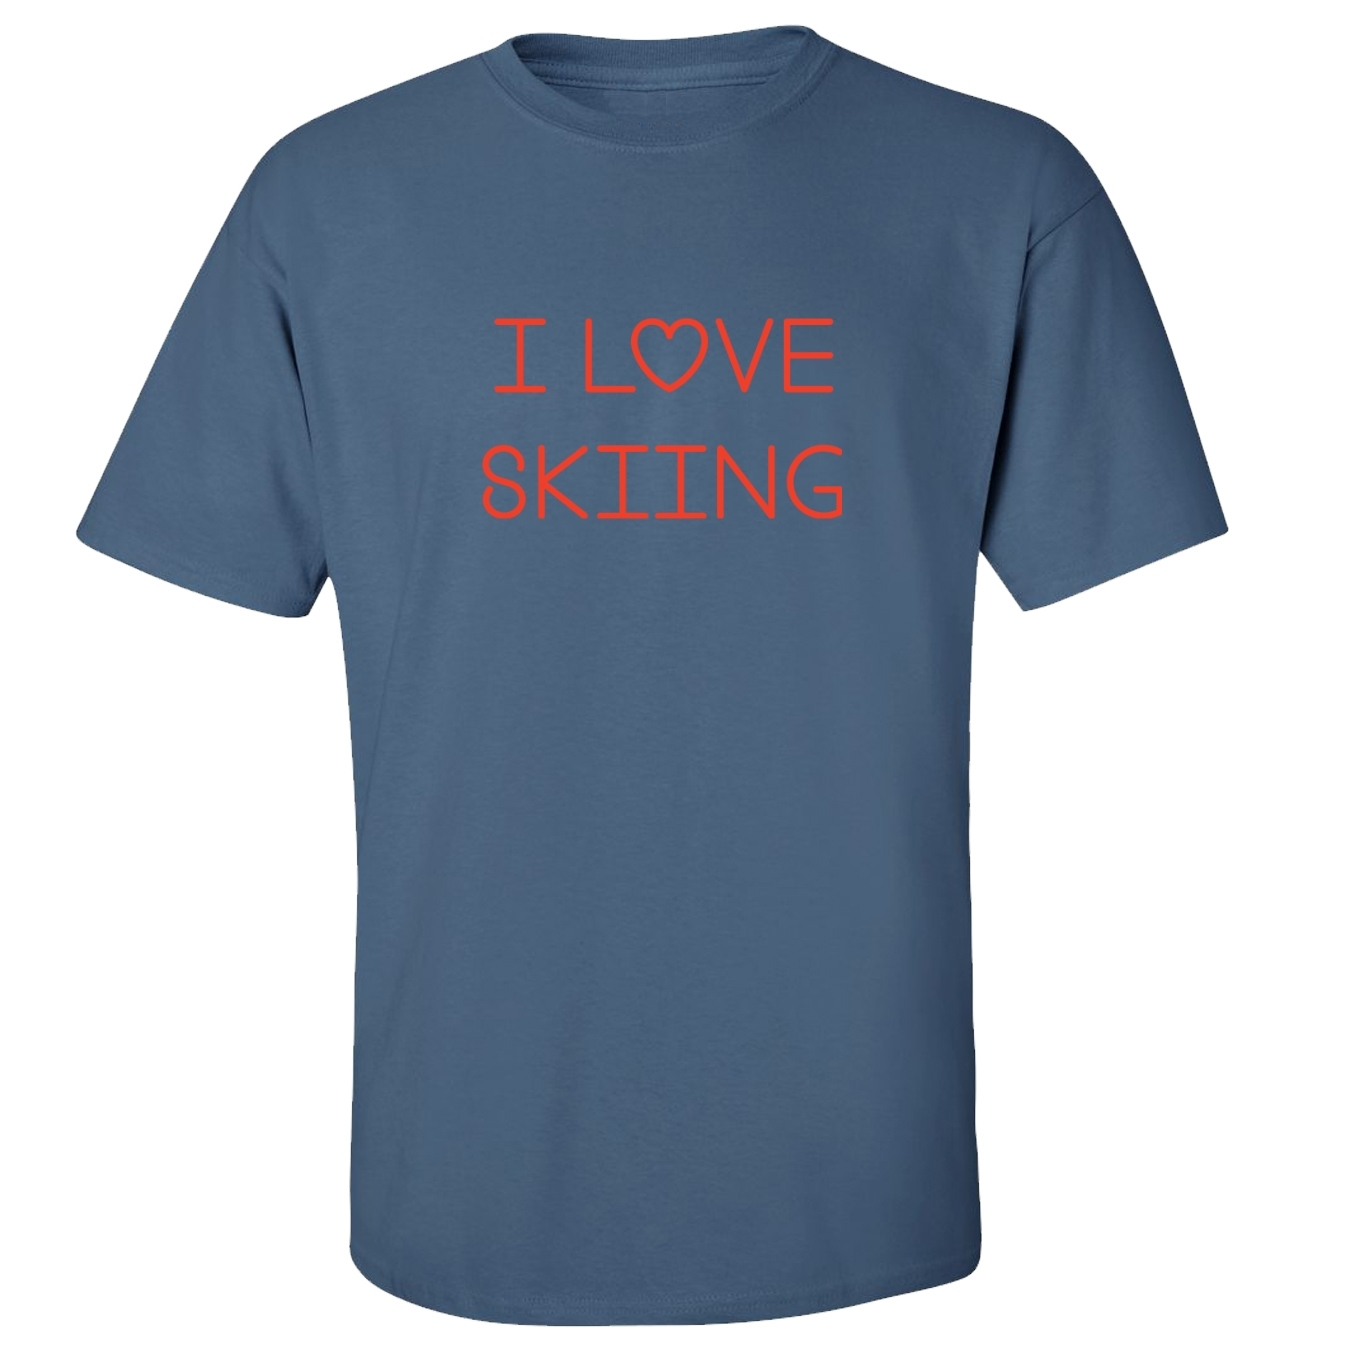 Mashed Clothing I Love Skiing Adult T-Shirt at Sears.com